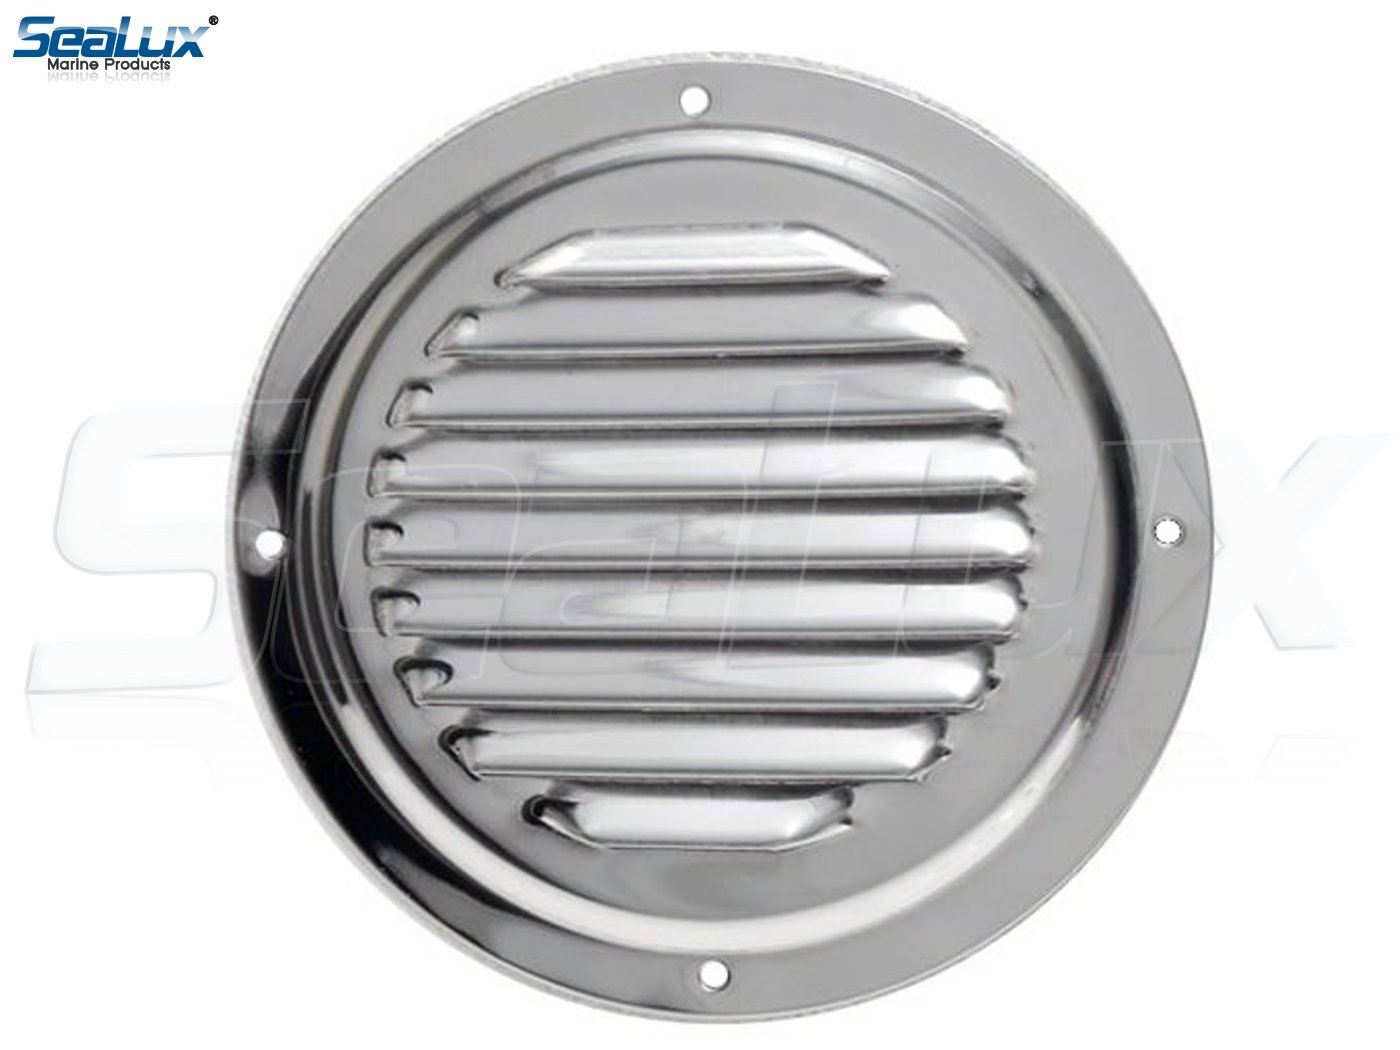 SeaLux Stainless Steel 6 Inch Marine Boat Engine Louvered Style Vent Cover by SeaLux Marine Products